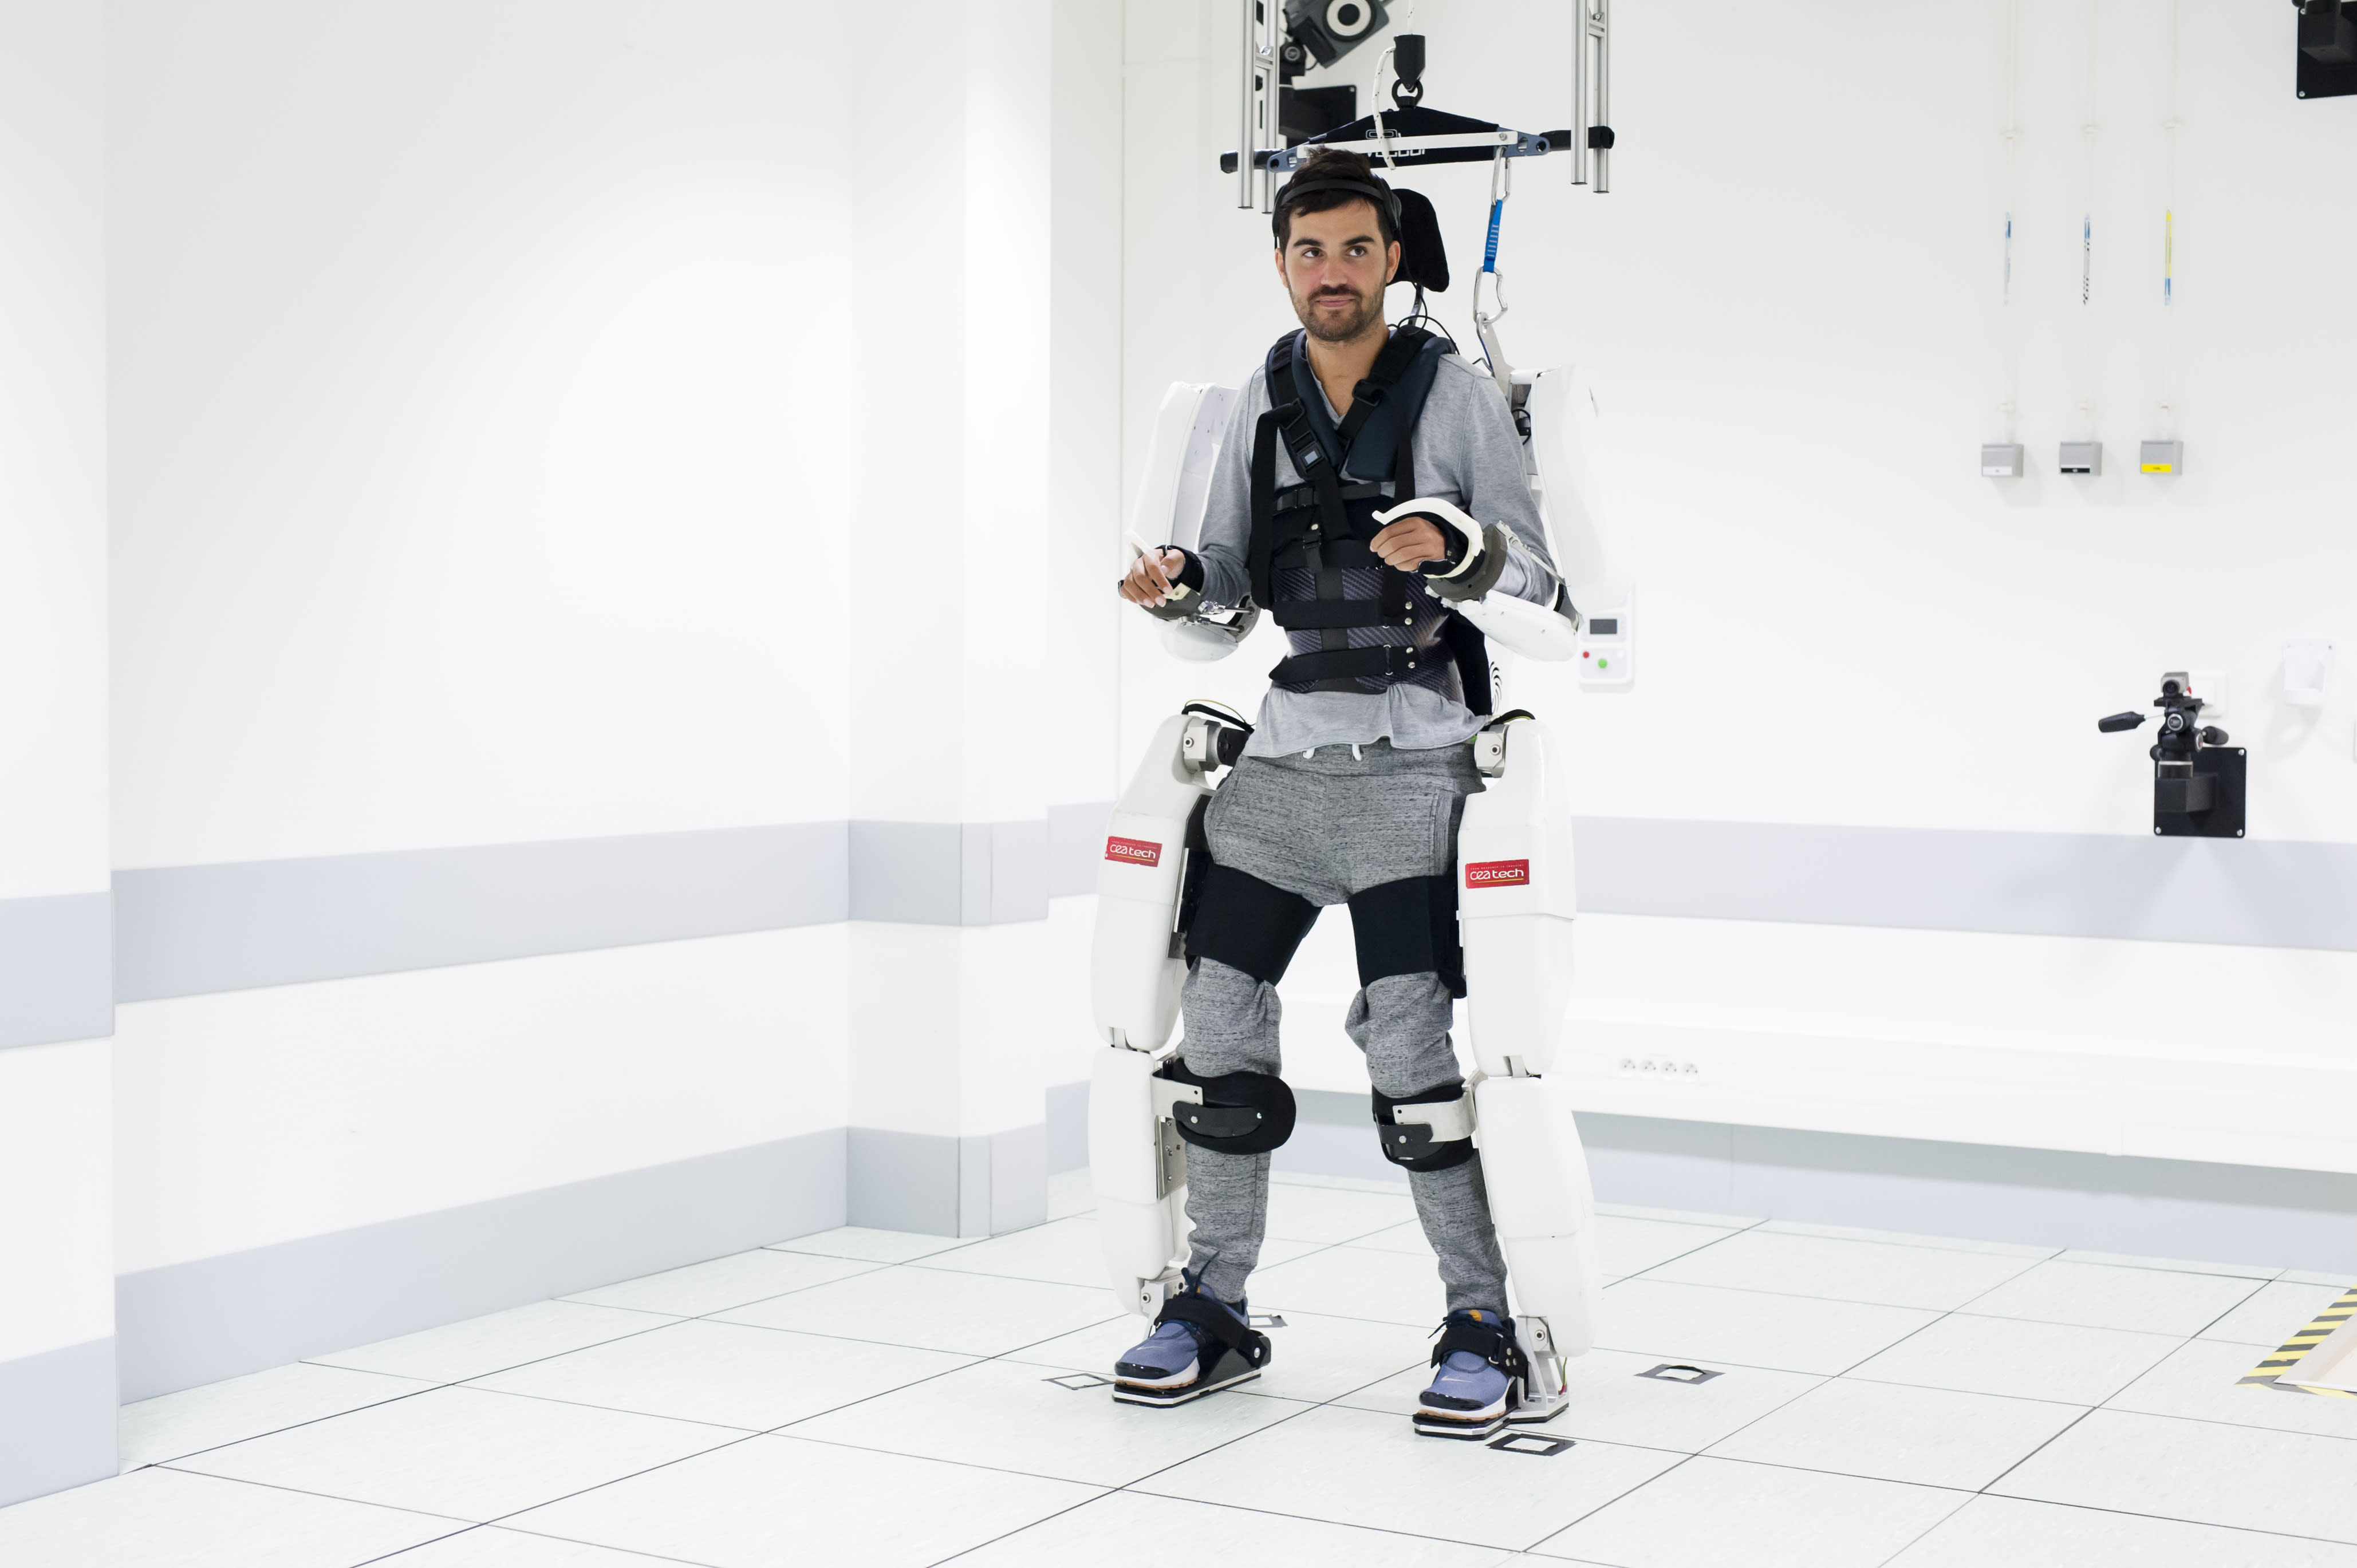 Thibault walked with the help of the exoskeleton (Picture: Fonds de dotation Clinatec)